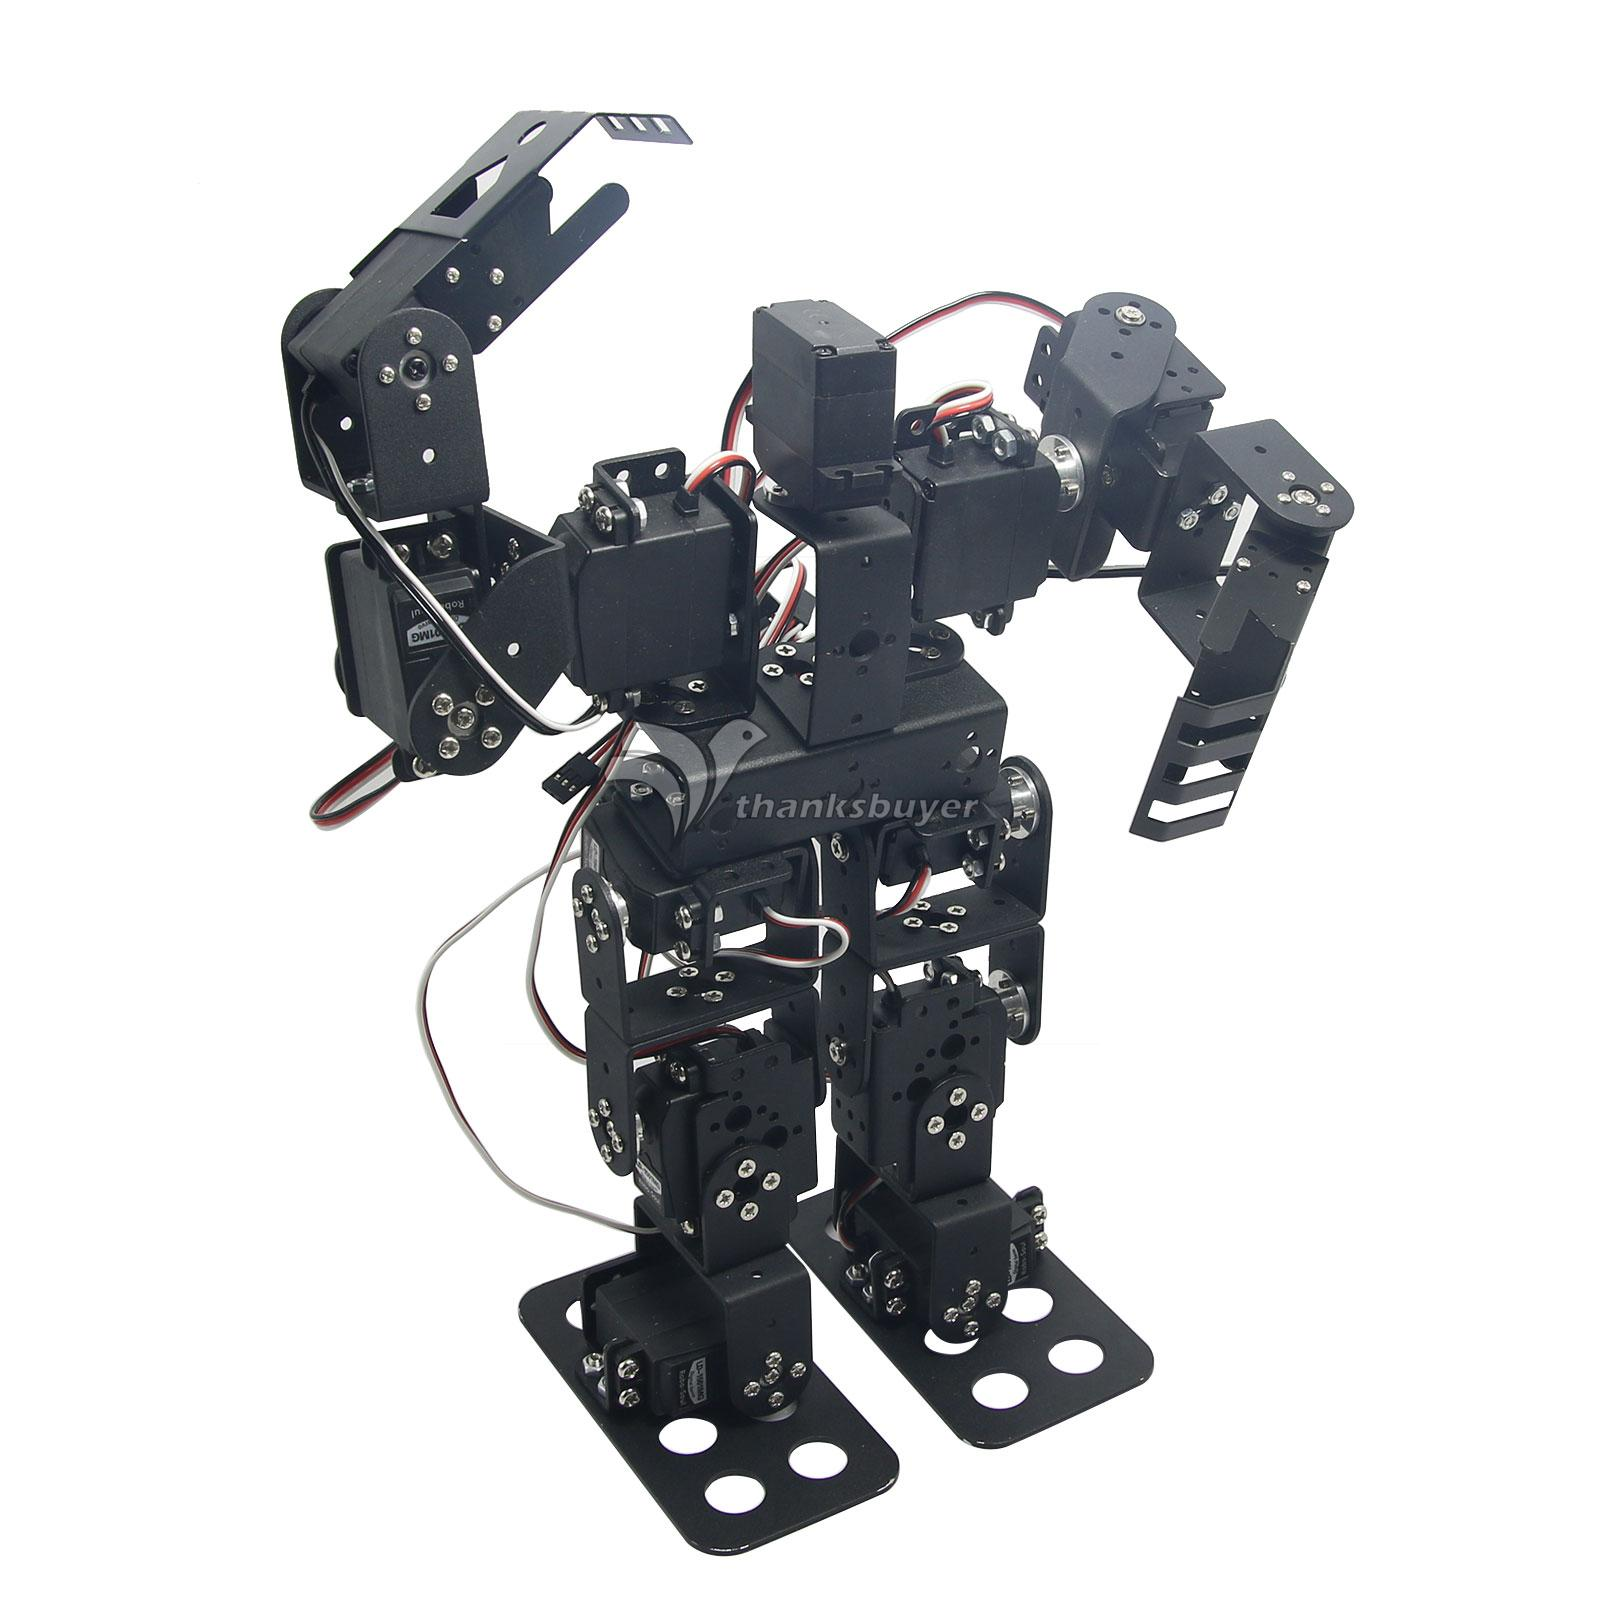 Assembled 13DOF Biped Robotic Educational Robot Servo Bracket Ball Bearing w/LD-1501MG Servo new 17 degrees of freedom humanoid biped robot teaching and research biped robot platform model no electronic control system